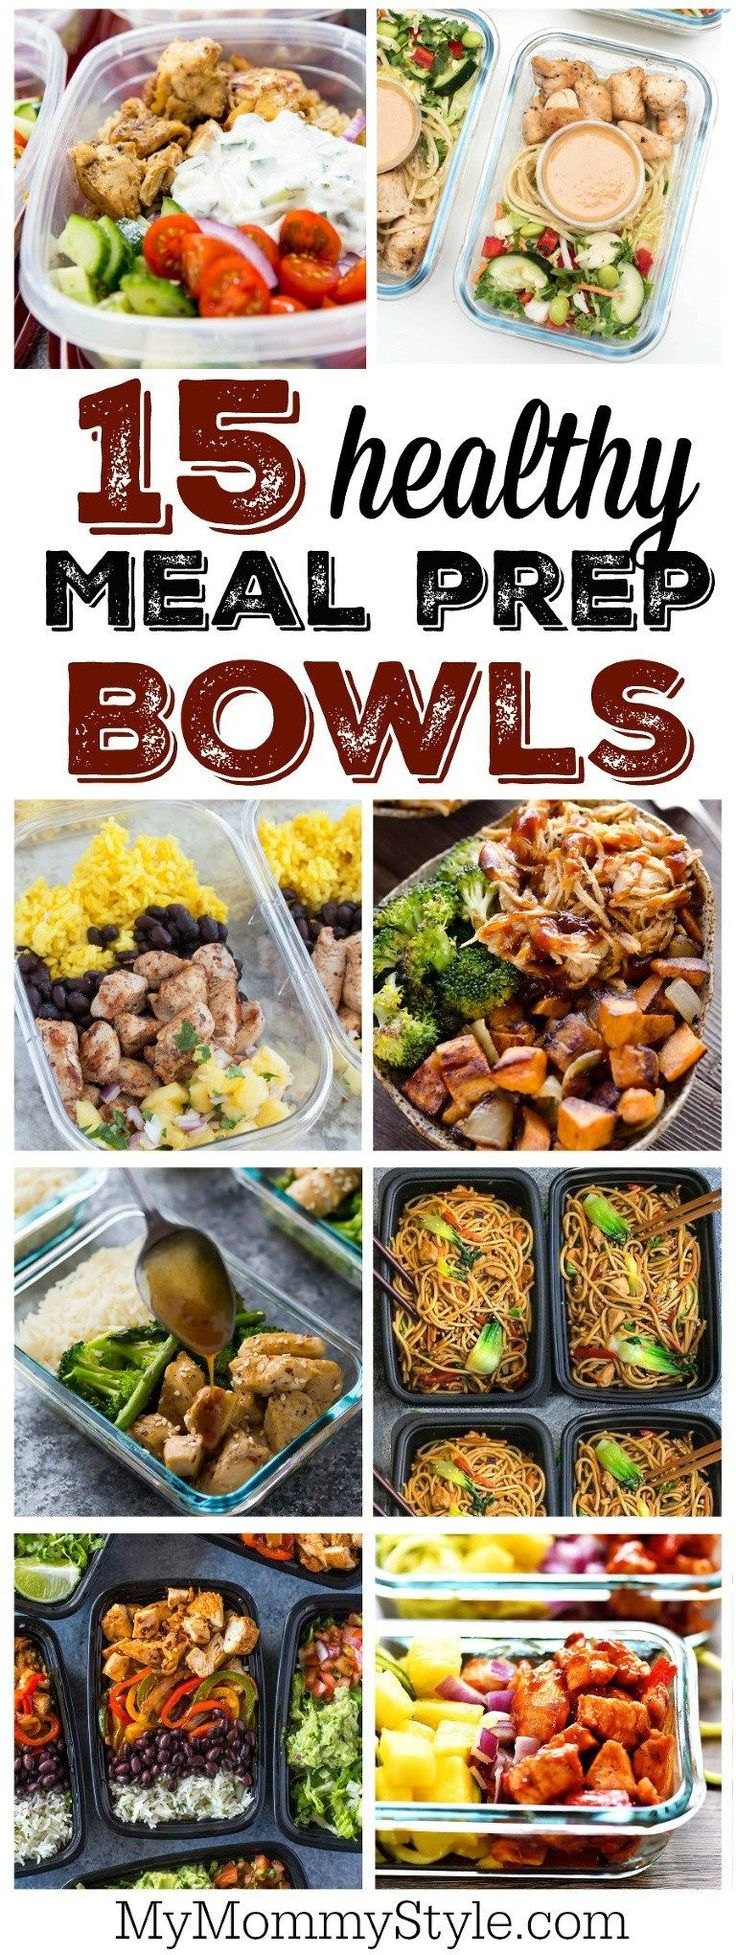 15 healthy meal prep bowl recipes